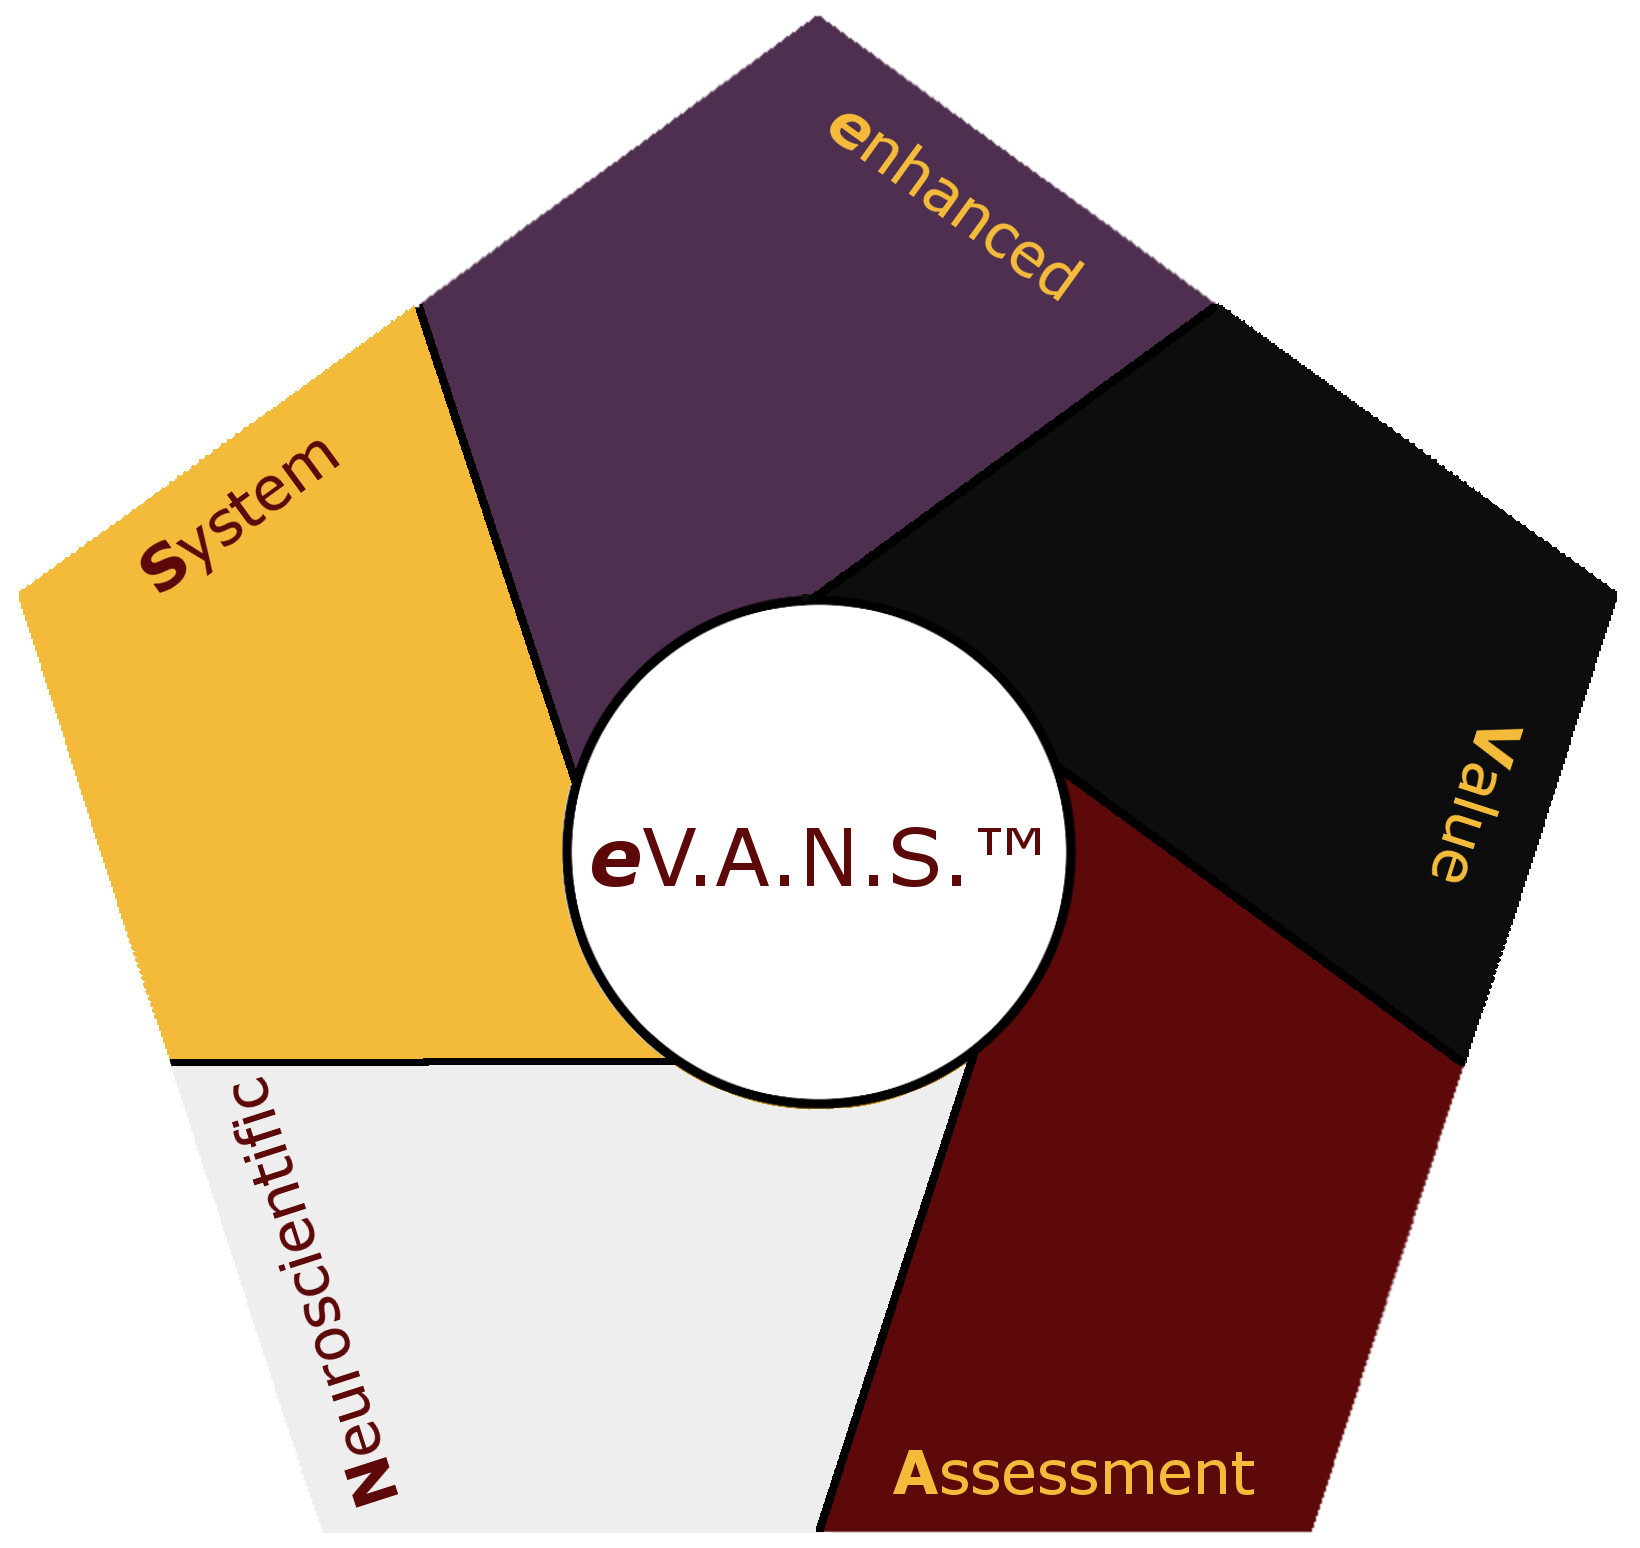 Why Use The eV.A.N.S. Business Tool Kit?